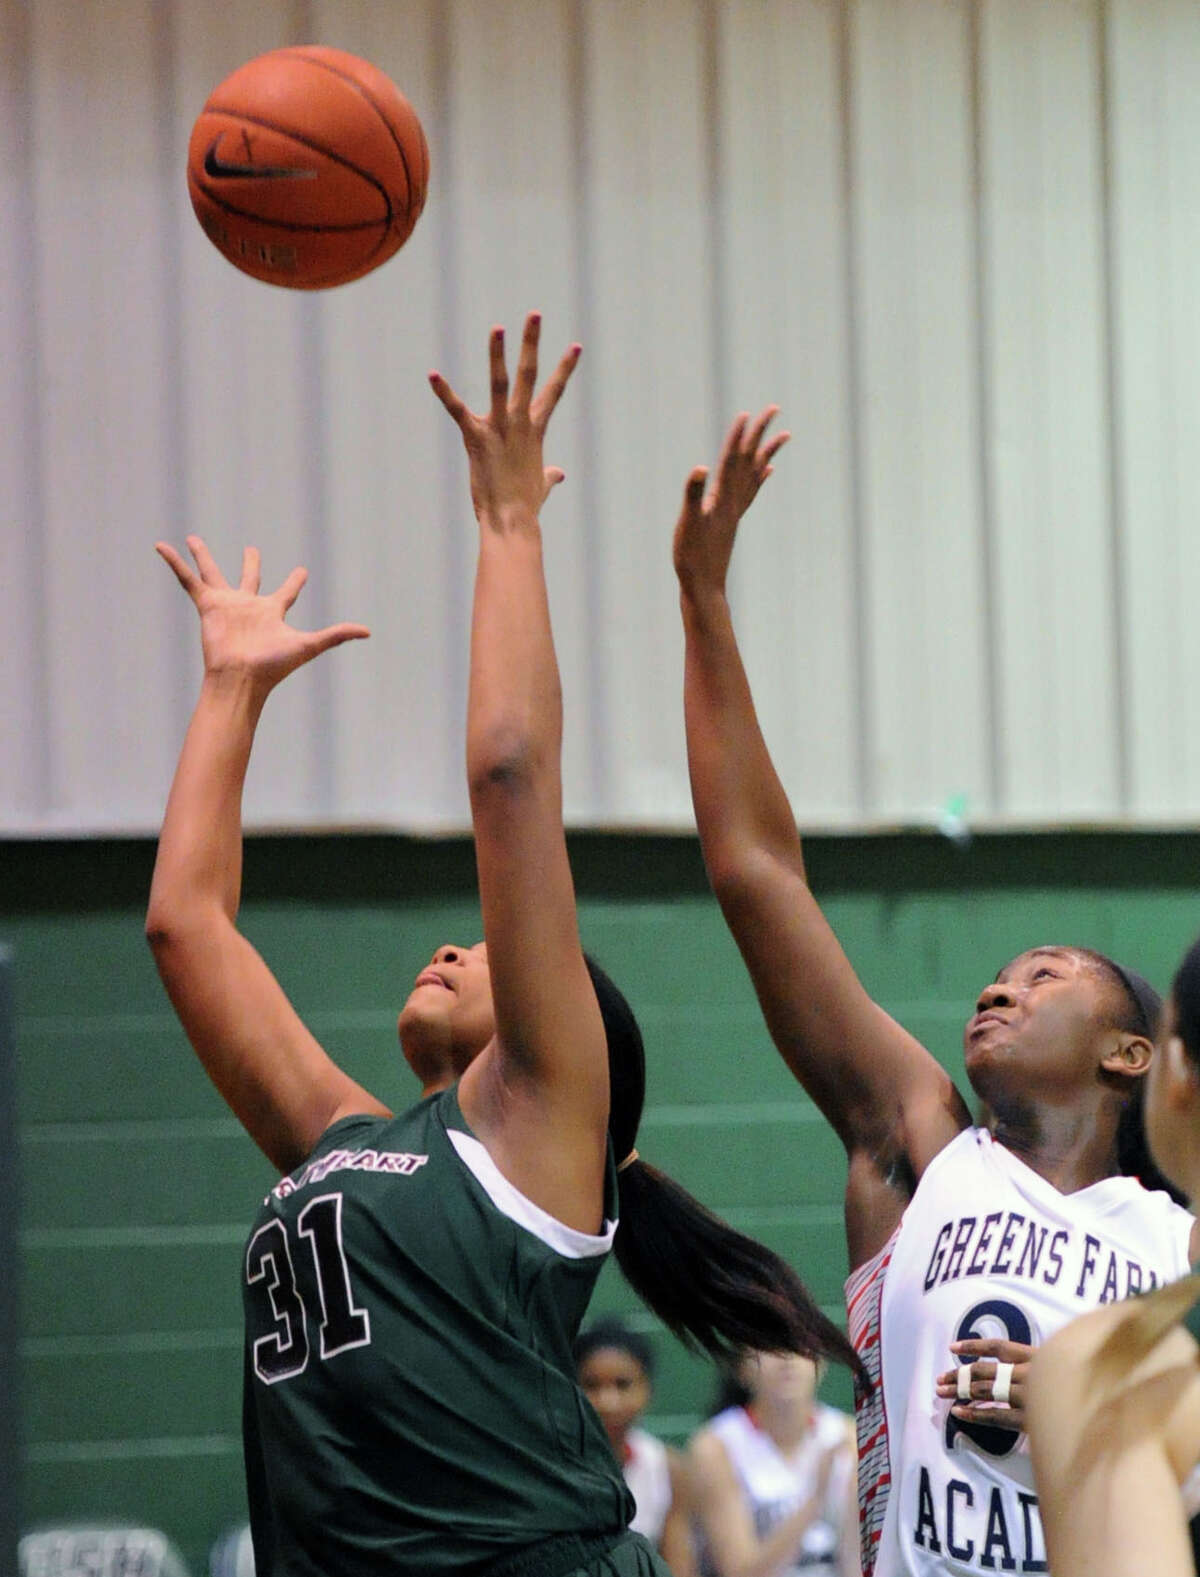 At left, Shelby Holland (#31) of Convent of the Sacred Heart grabs an offensive rebound as Lisa Johnson (# 22) of Greens Farms Academy at right, looks on during the FAA girls high school basketball quarterfinals between Convent of the Sacred Heart and Greens Farms Academy at Convent in Greenwich, Thursday, Feb. 20, 2014.